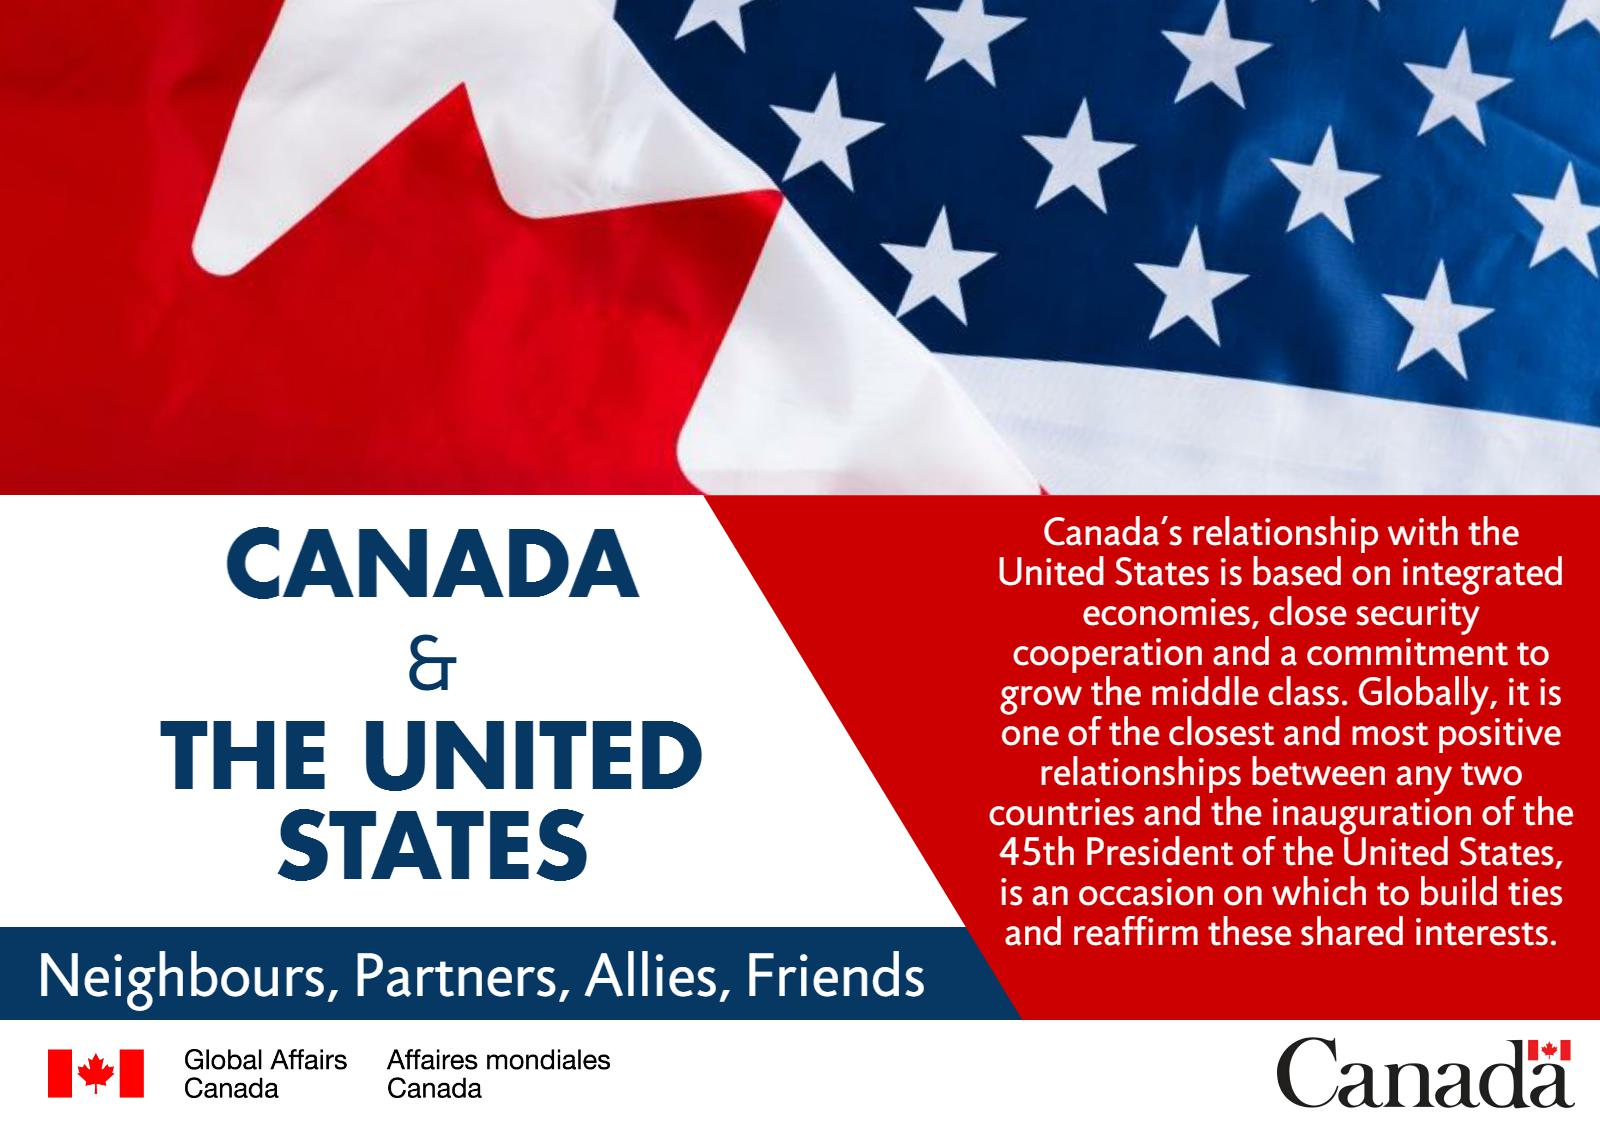 Min Freeland, Min Sajjan, Min Carr & PS Leslie are representing #CAD @CanEmbUSA events @NRCan  #inauguration2017 https://t.co/buxq1h7NVq https://t.co/ECFcoP3TtV